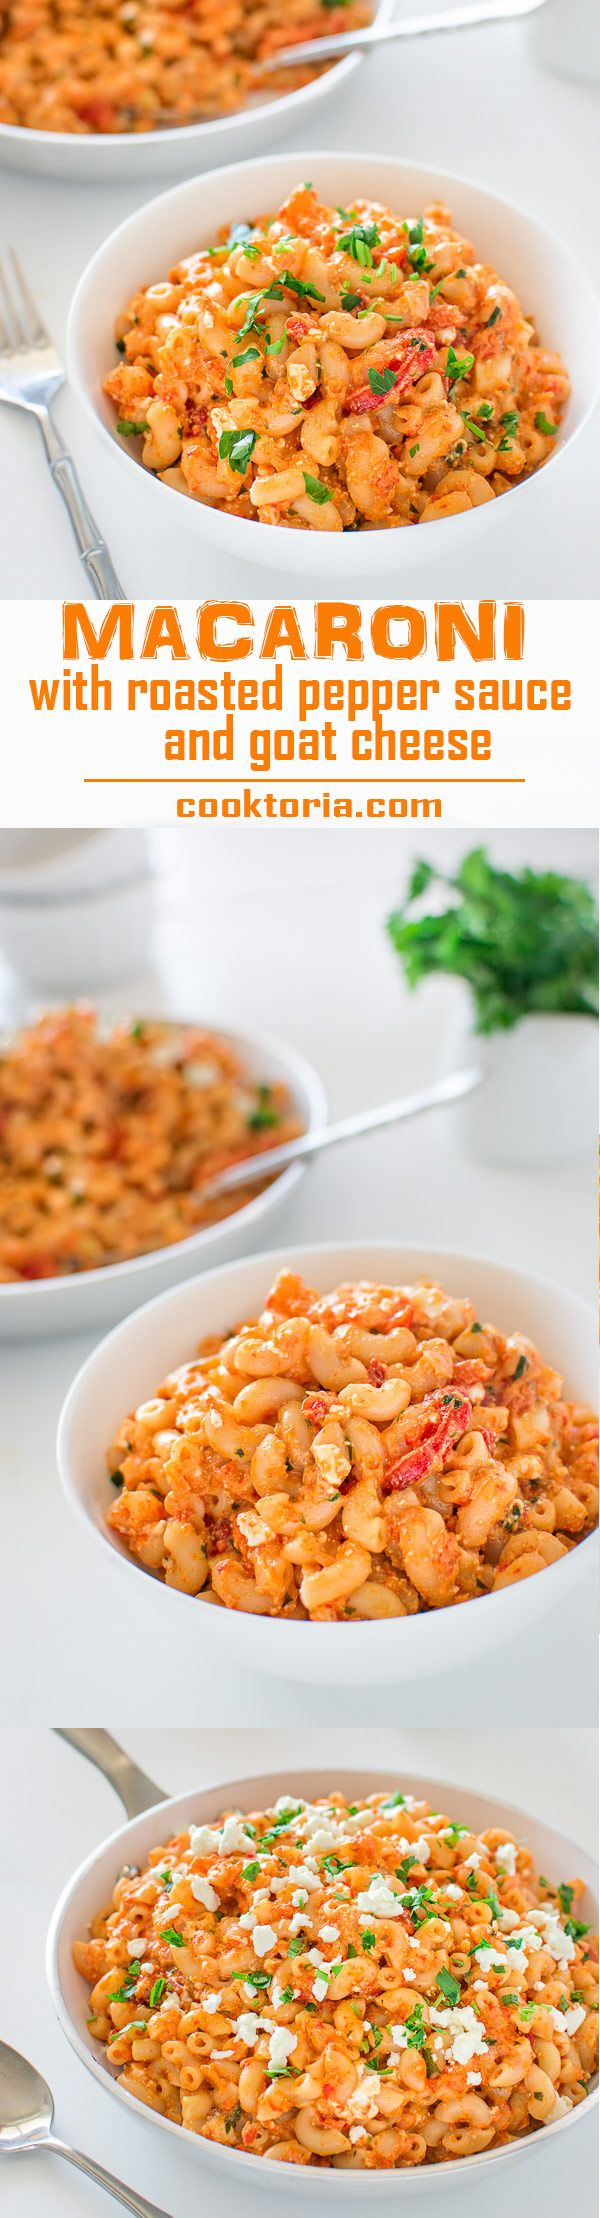 This tasty macaroni in colorful, homemade roasted pepper sauce and creamy goat cheese, makes a quick and healthy vegetarian dinner! ❤ COOKTORIA.COM